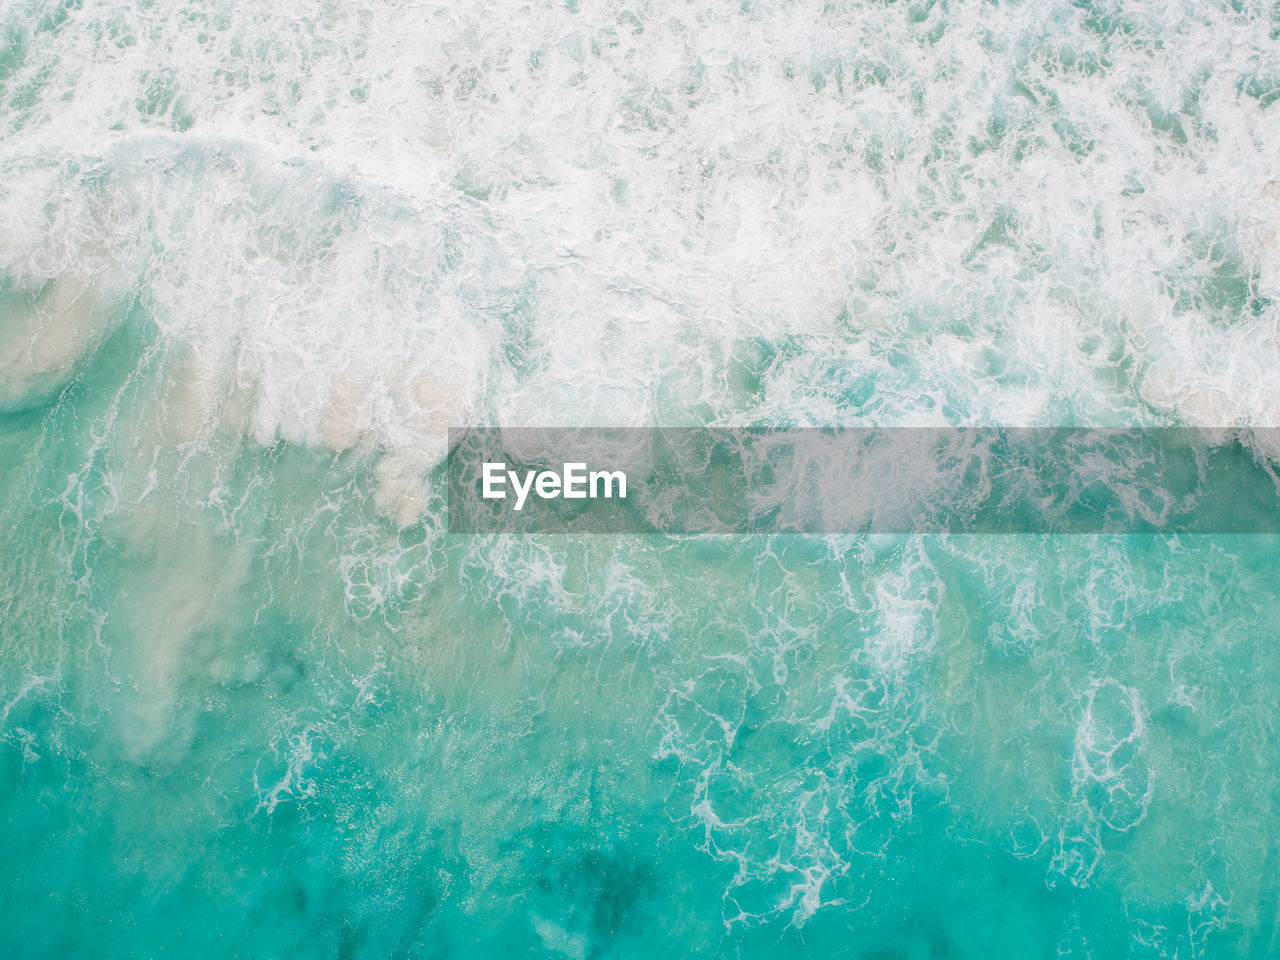 full frame, water, backgrounds, no people, sea, high angle view, nature, motion, turquoise colored, textured, waterfront, pattern, blue, day, abstract, splashing, beauty in nature, swimming pool, close-up, textured effect